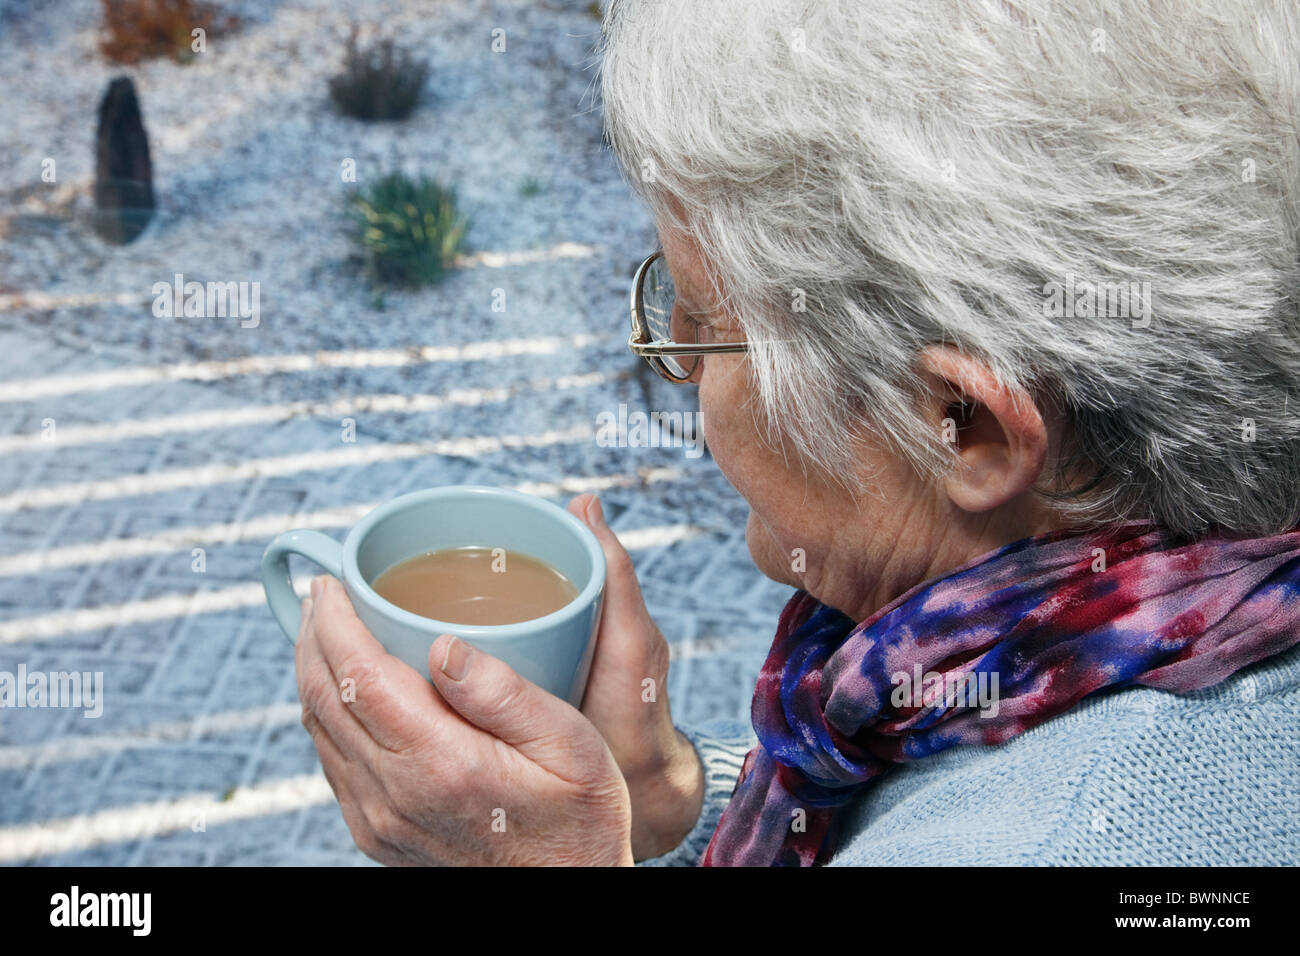 Everyday hygge scene with senior woman living alone wearing a scarf and holding a warm drink looking out of a window - Stock Image